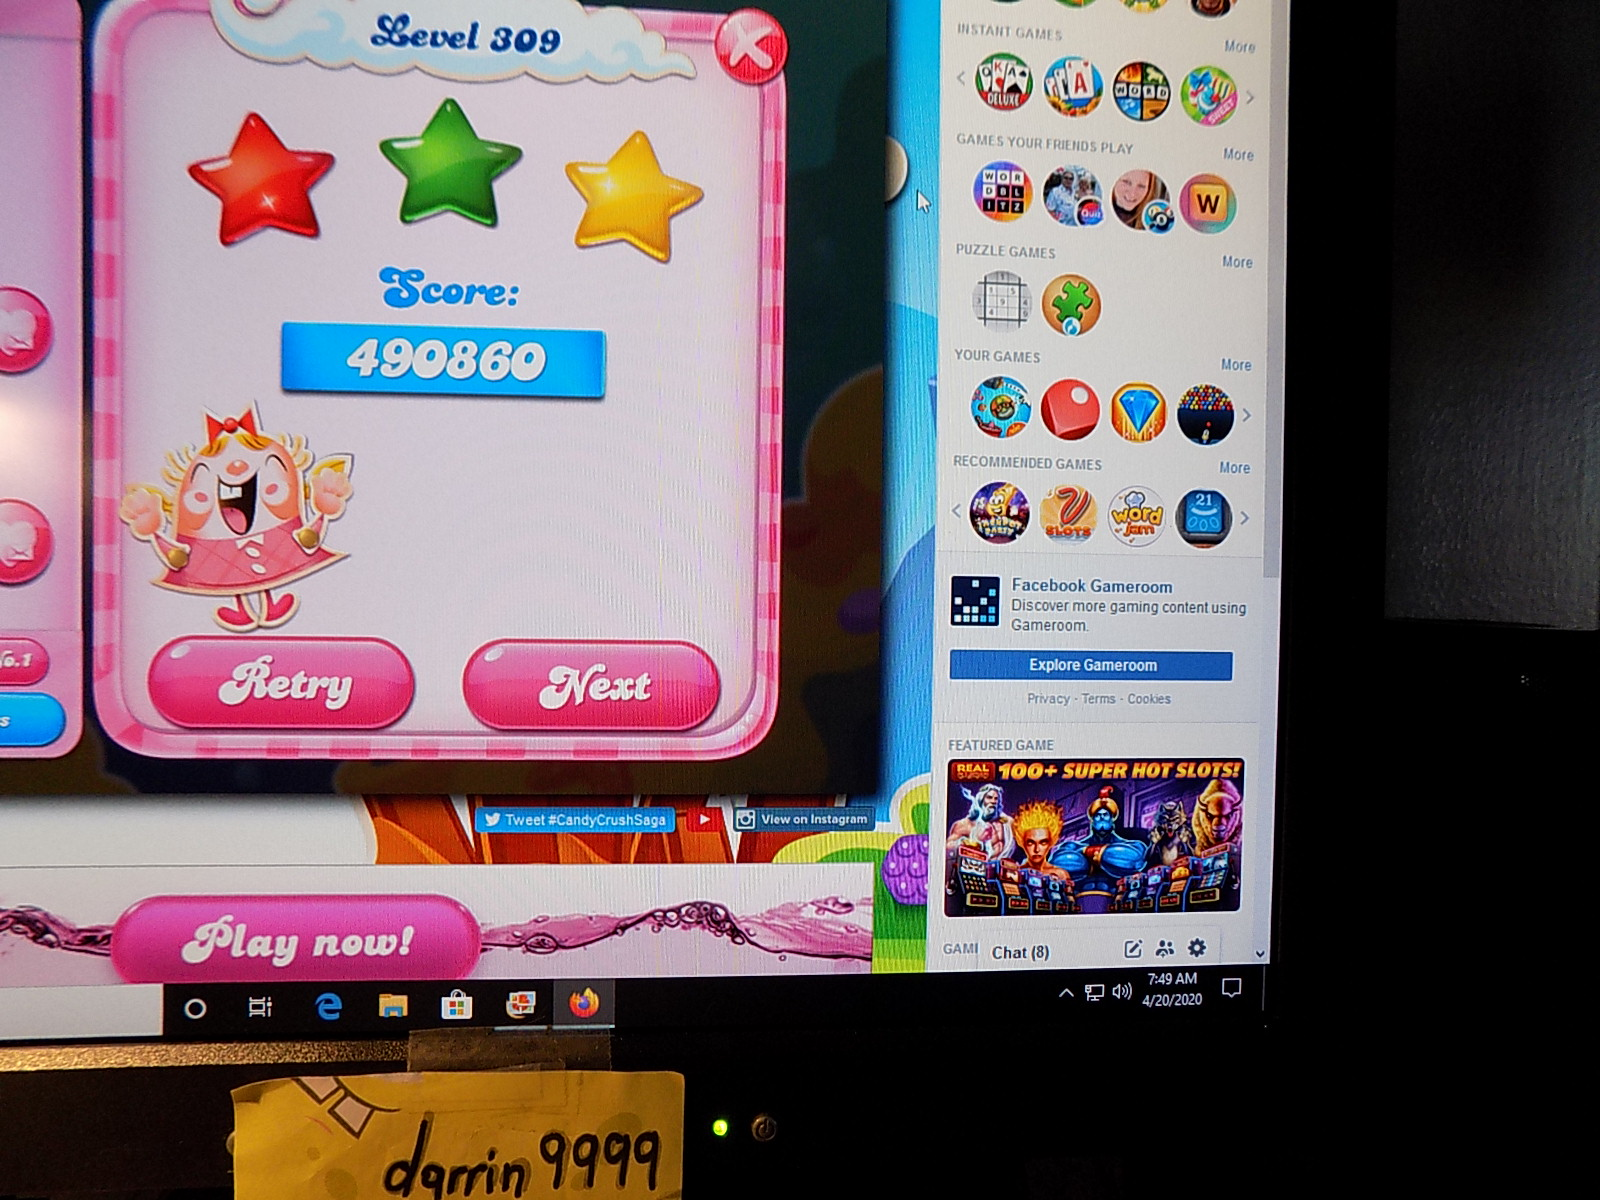 Candy Crush Saga: Level 309 490,860 points